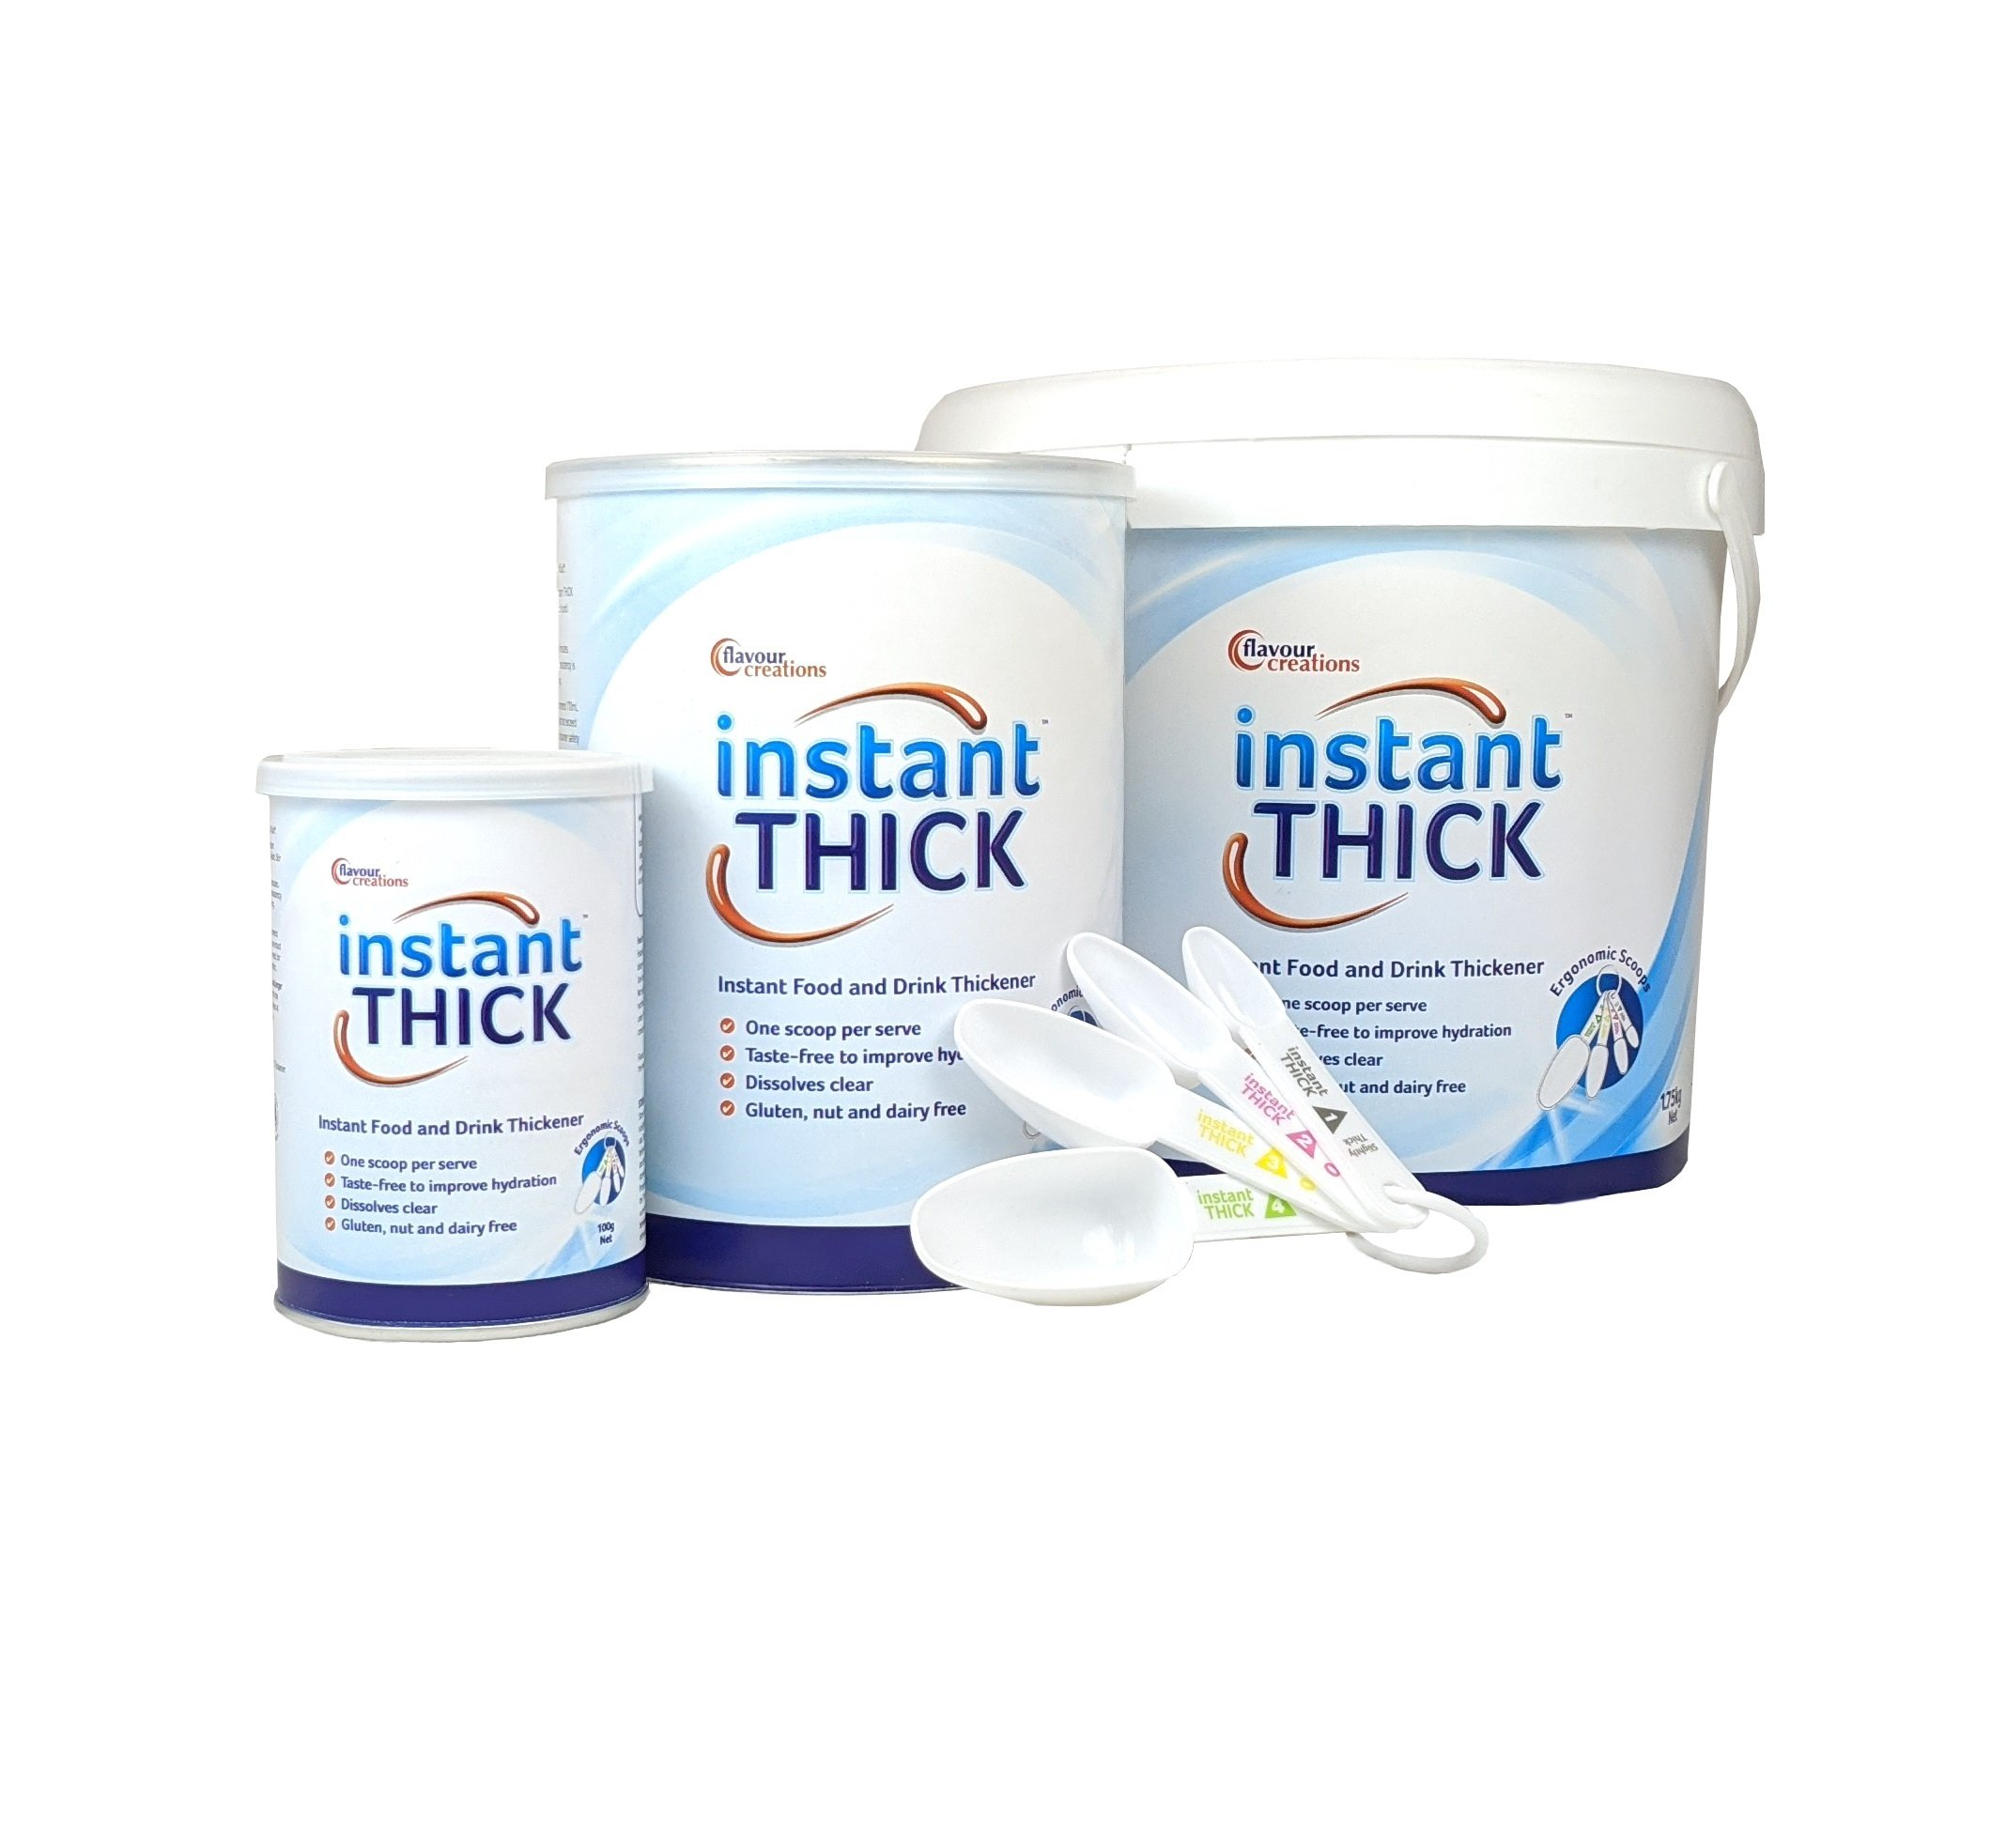 Flavour Creations Instant Thick 100g